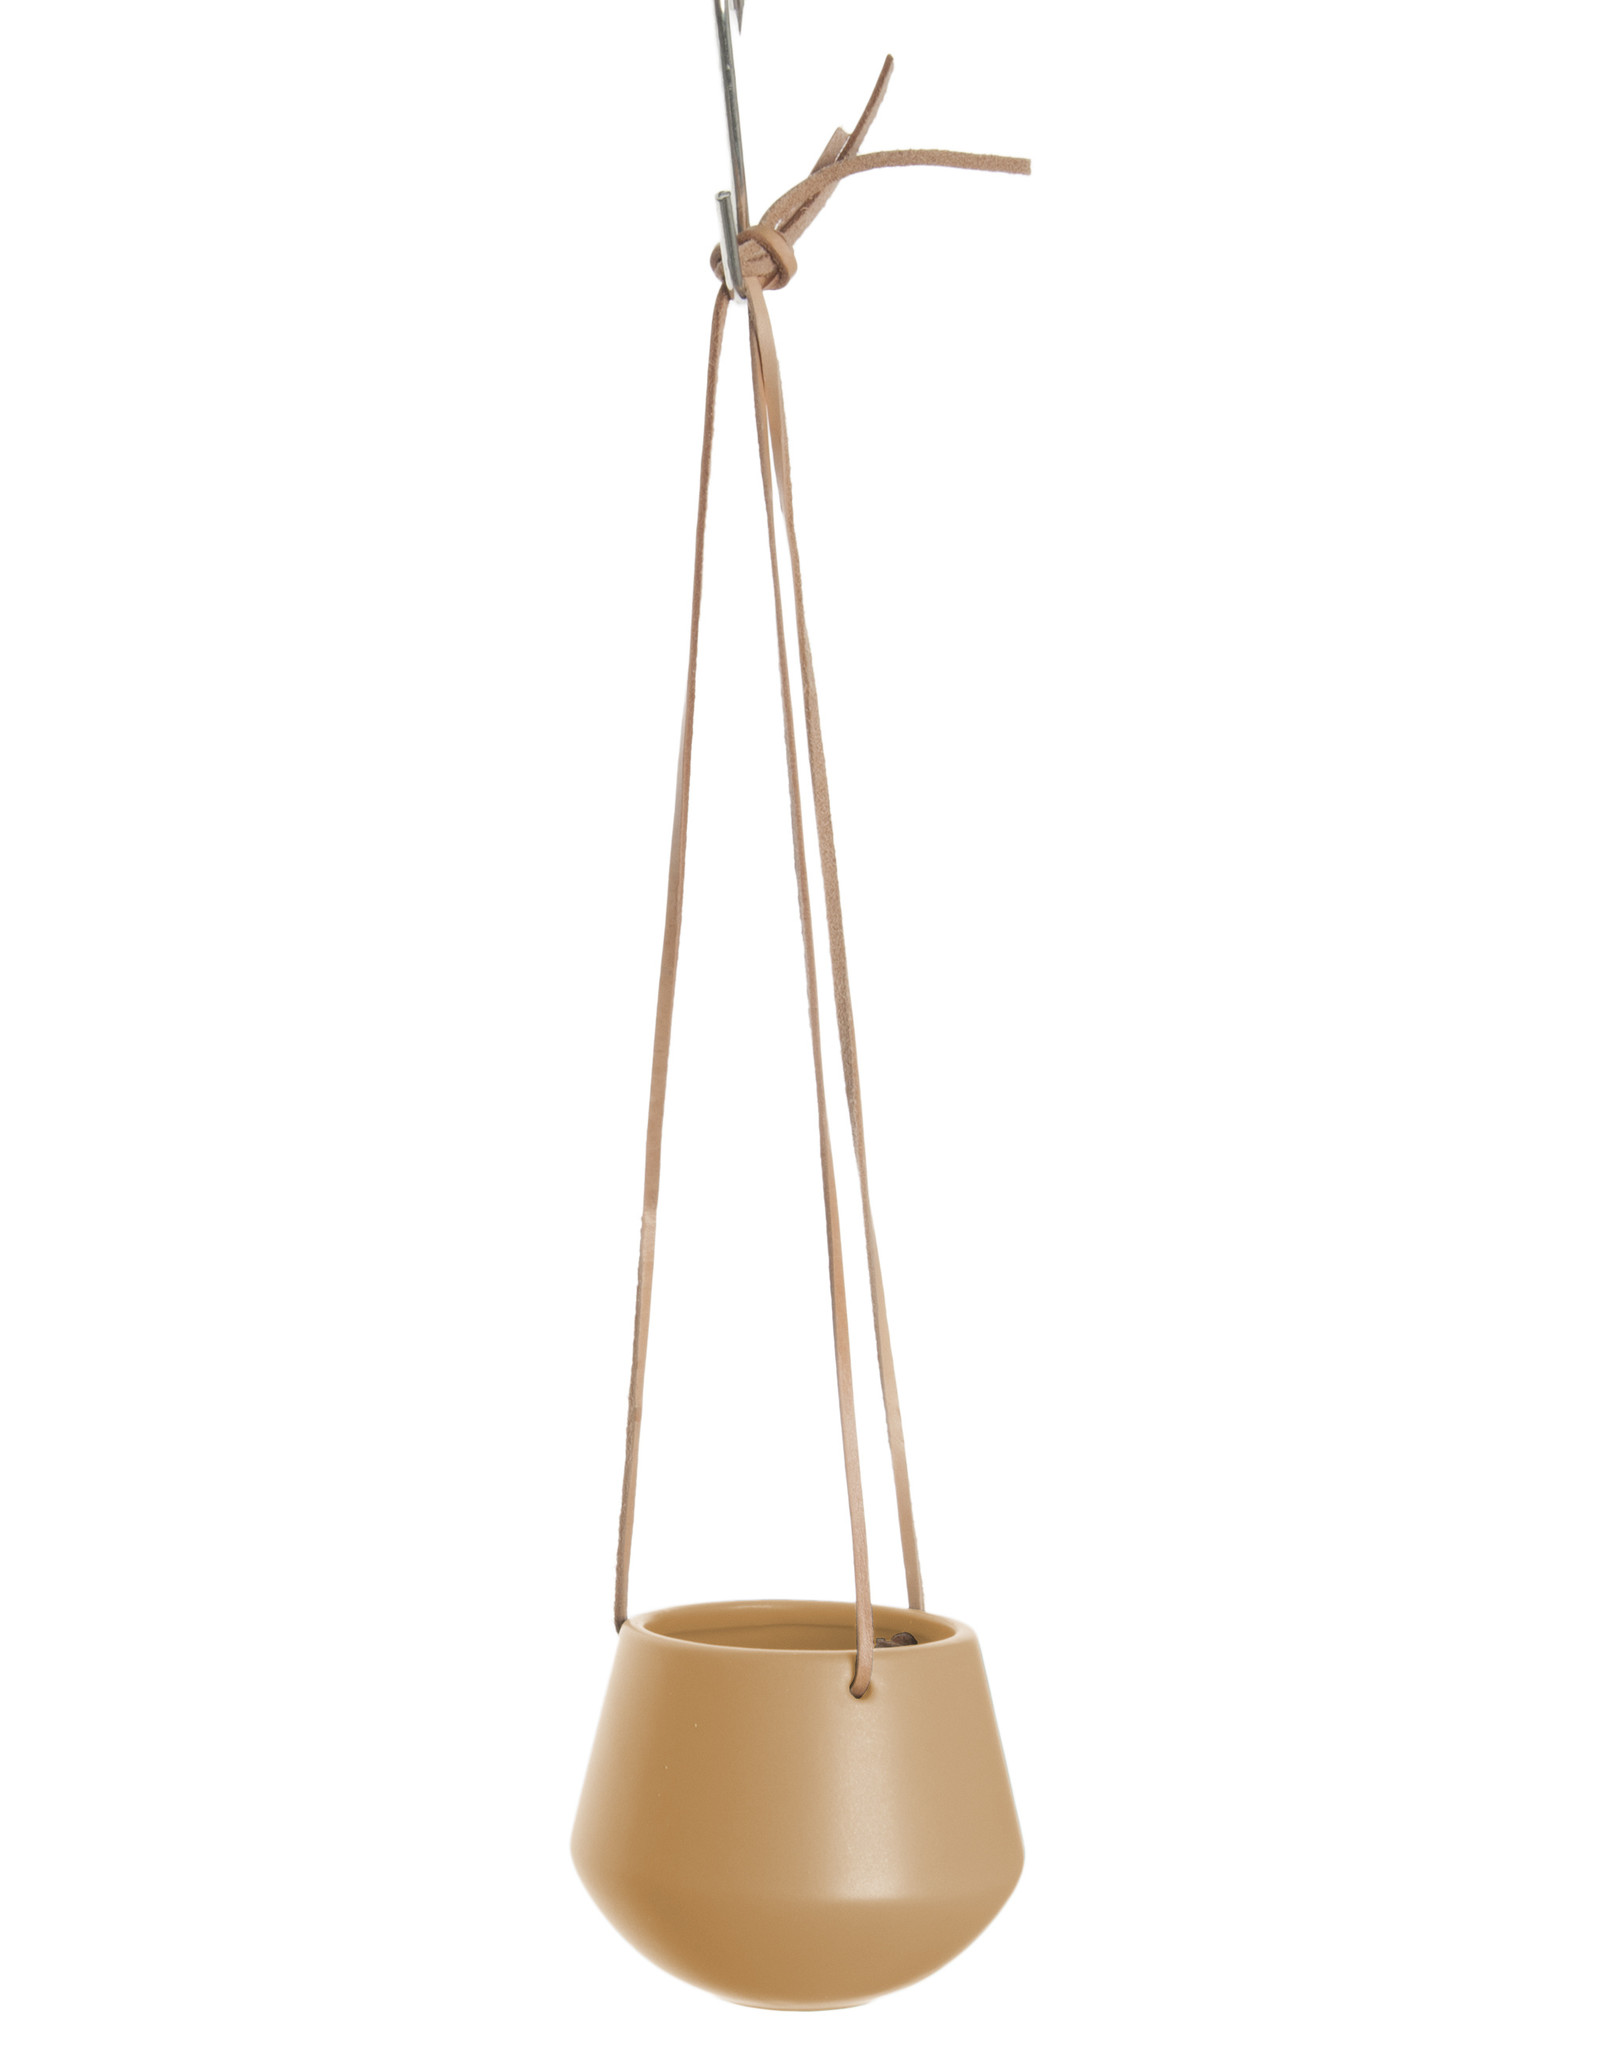 Hanging pot Skittle SMALL-sand brown